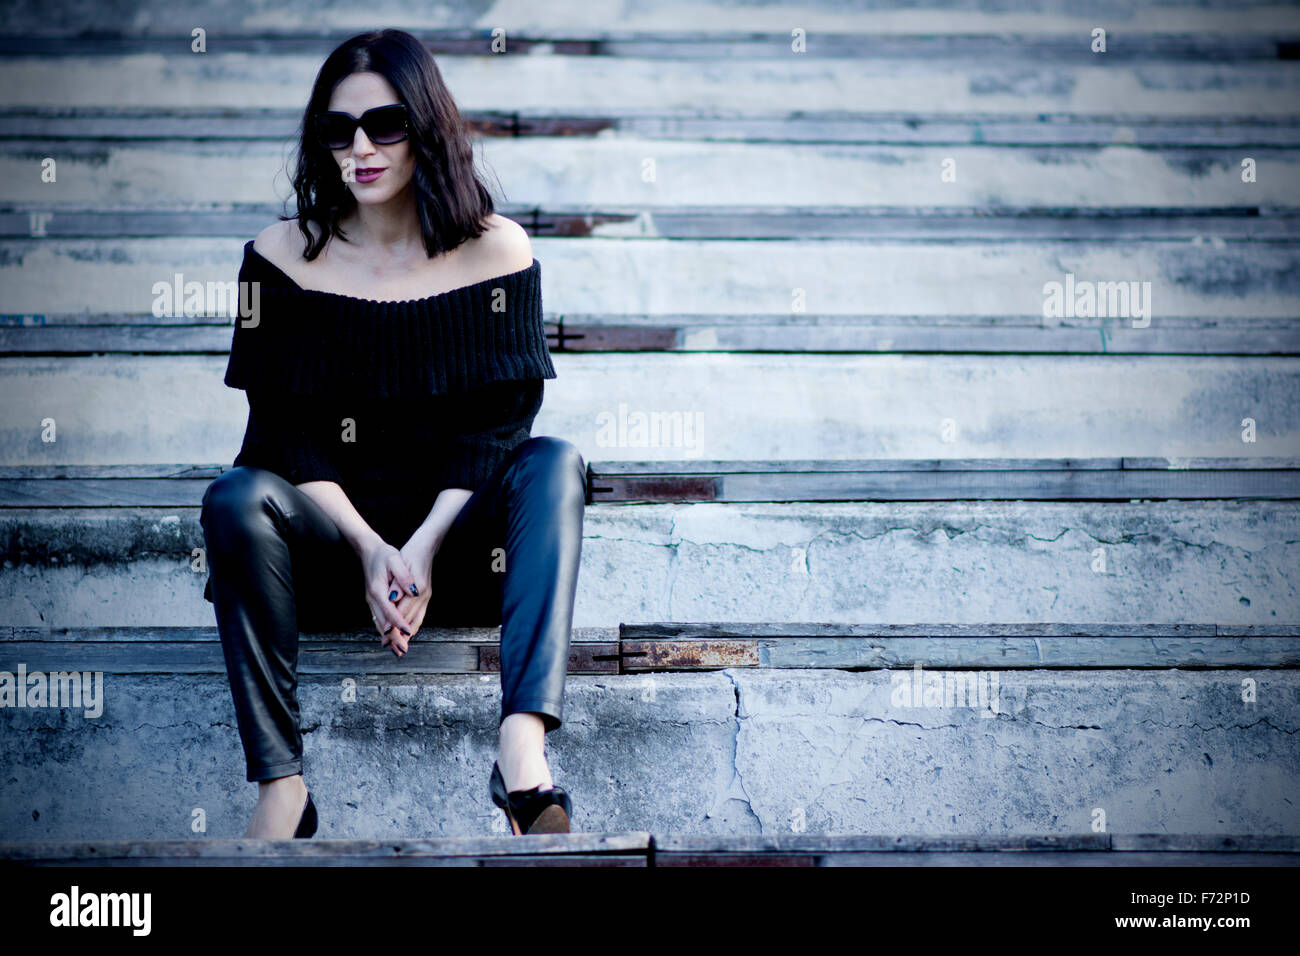 827ef59ccf6 Attractive woman in black leather pants, black sweater and high ...